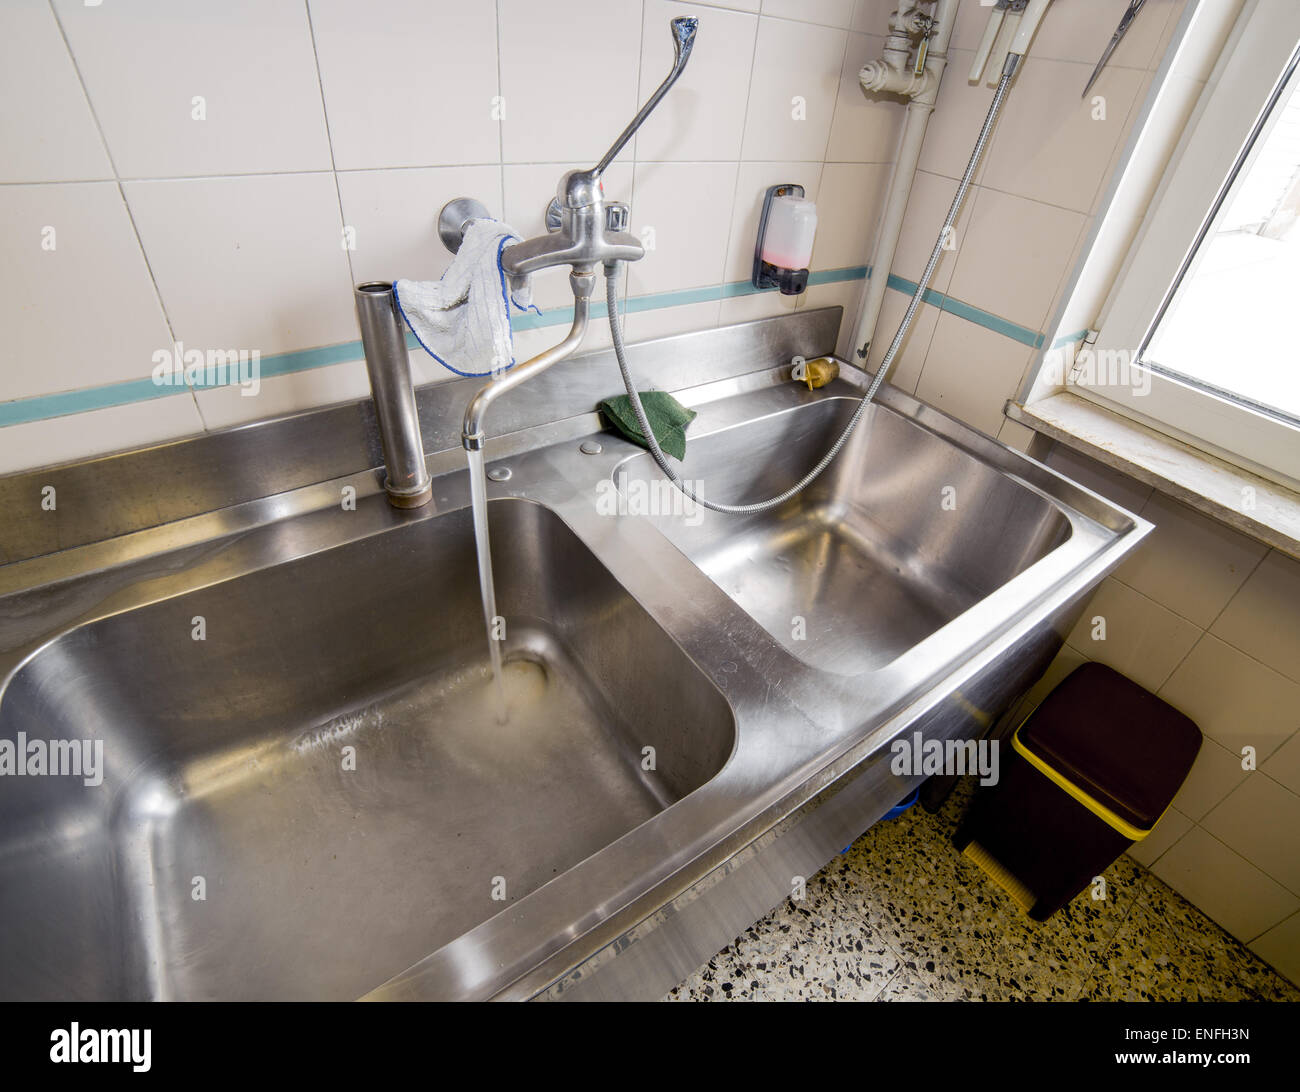 huge sink stainless steel industrial kitchen with open tap Stock Photo